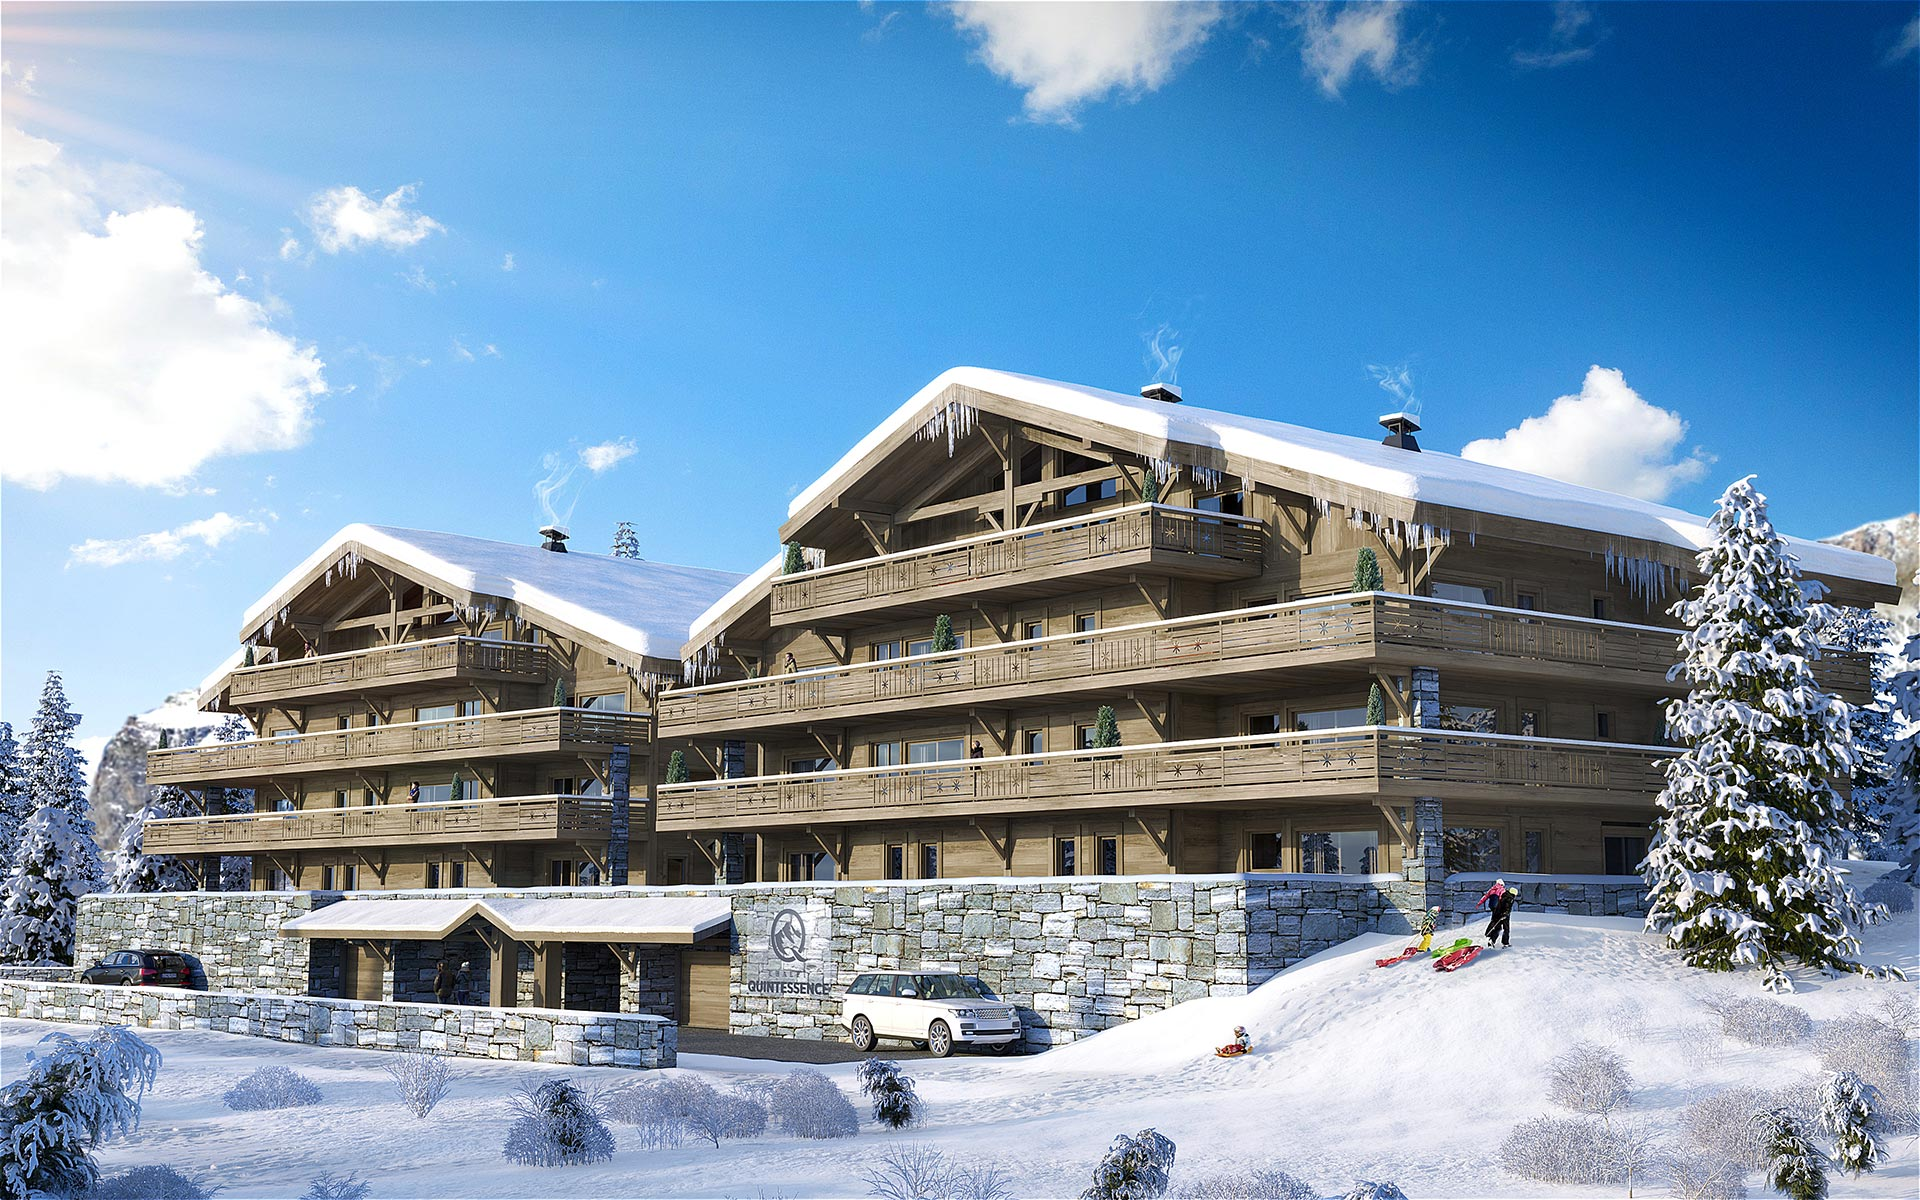 3D architectural visualization of chalet blocks in a snowy environment